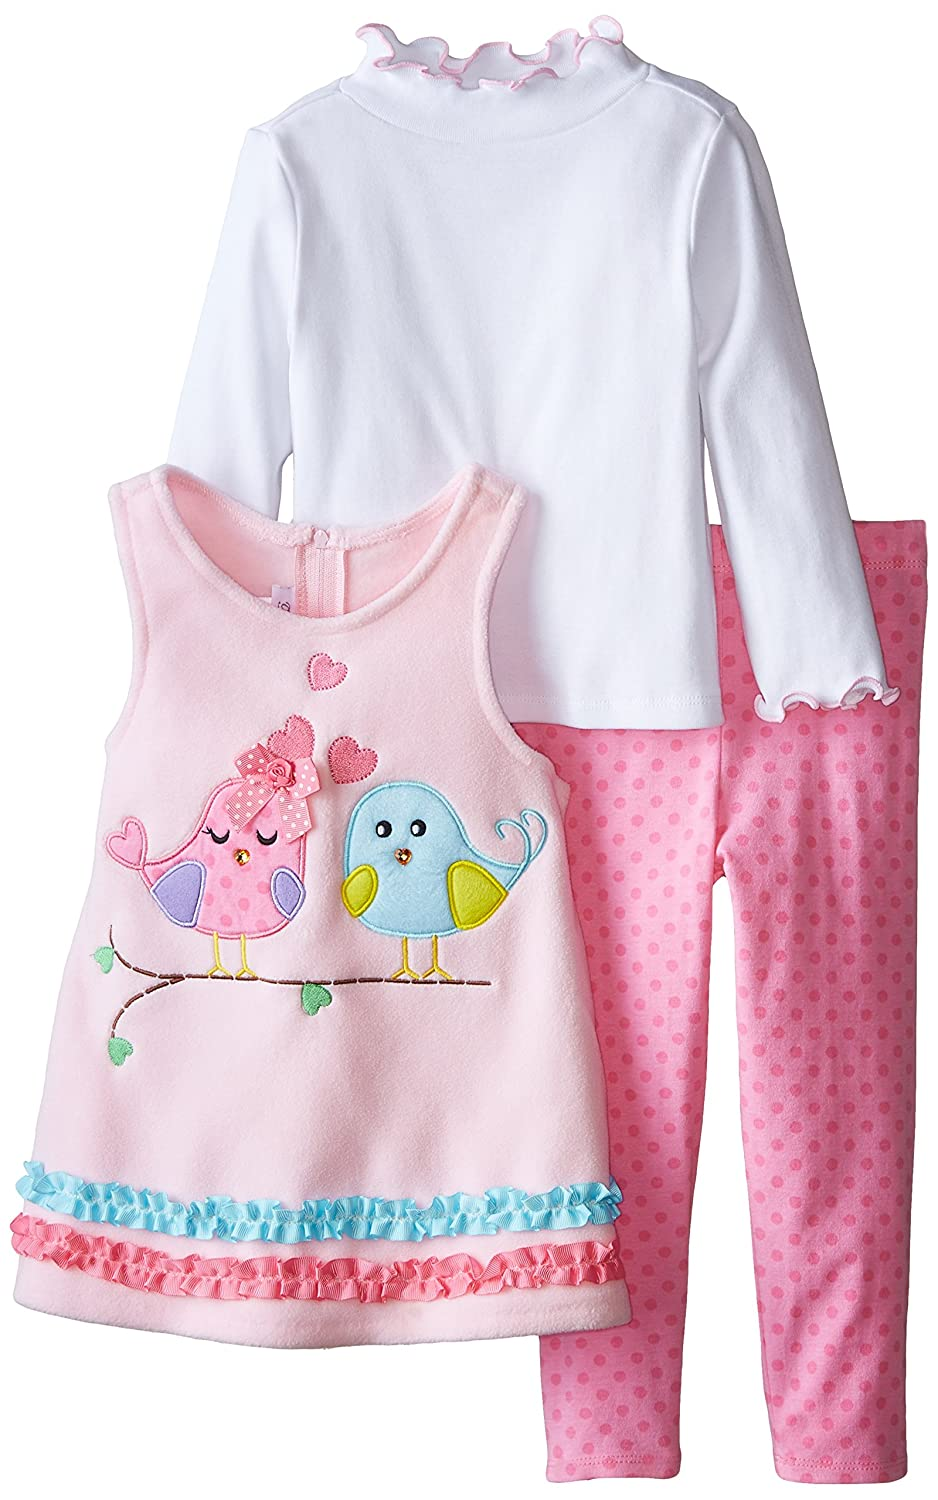 Bonnie Jean Girls Lovebird Applique Fleece Playwear Set